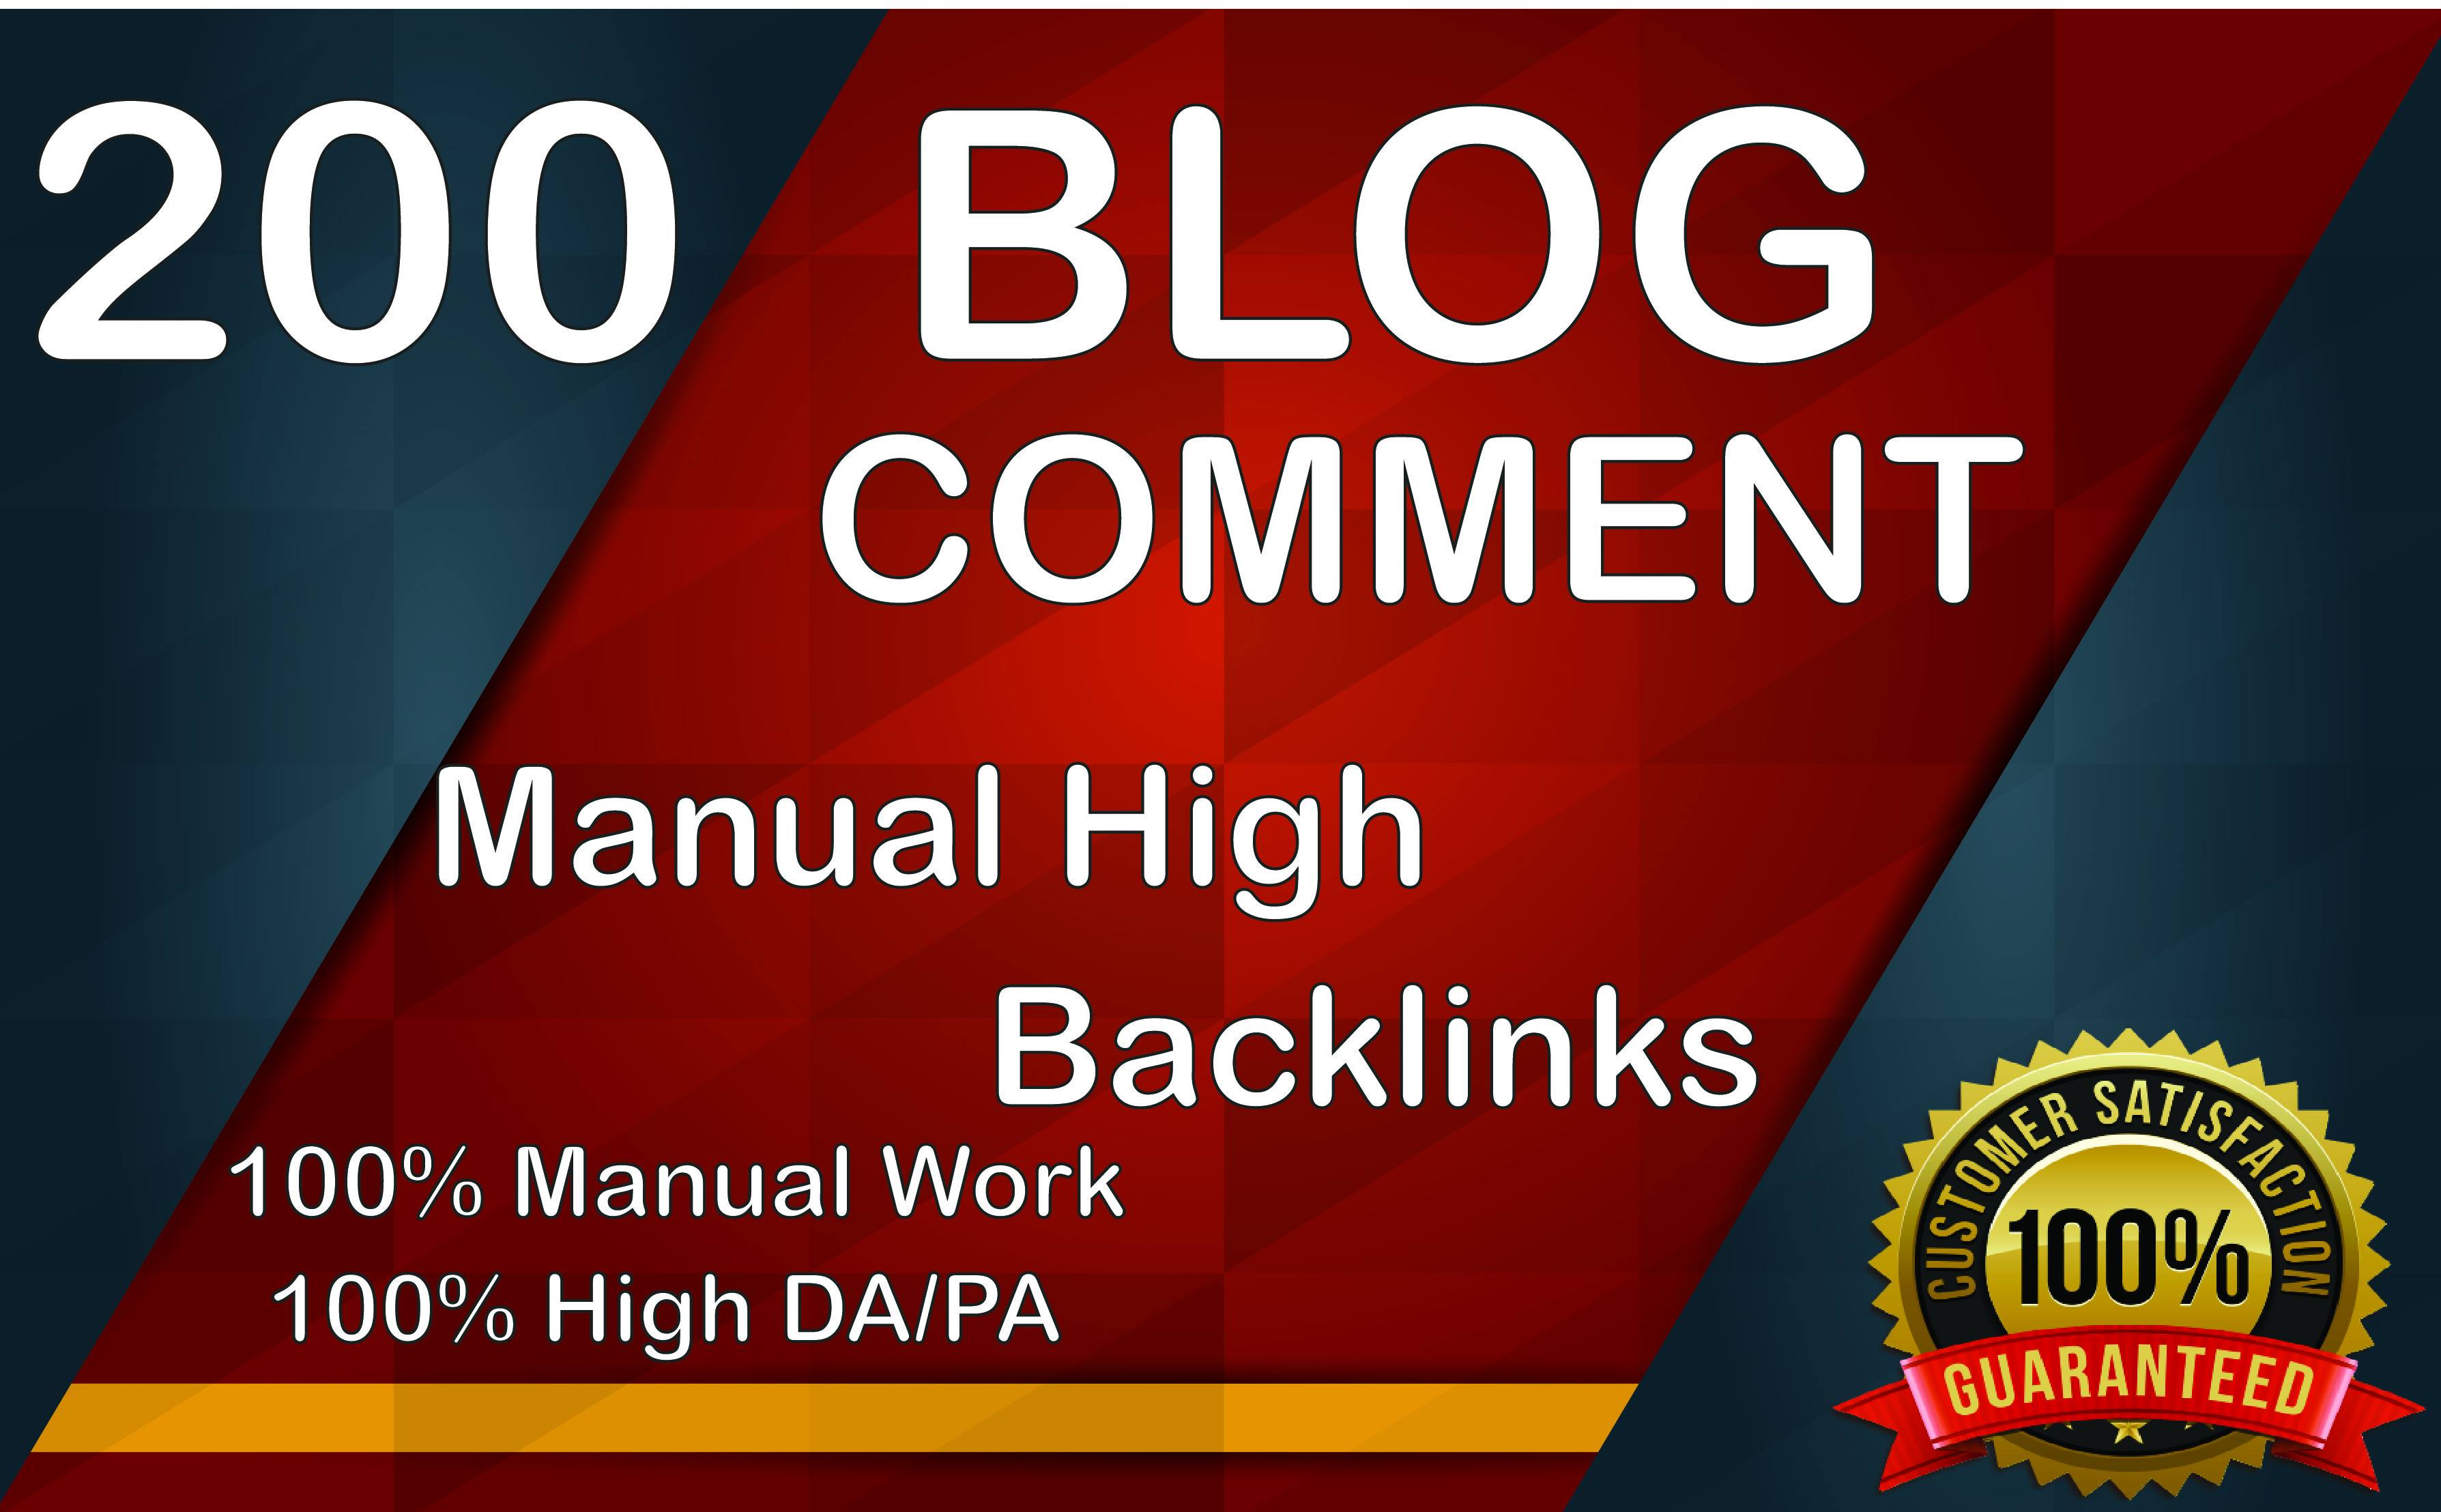 200 Manually Blog Comment Unique Domain SEO Backlinks High DAPA